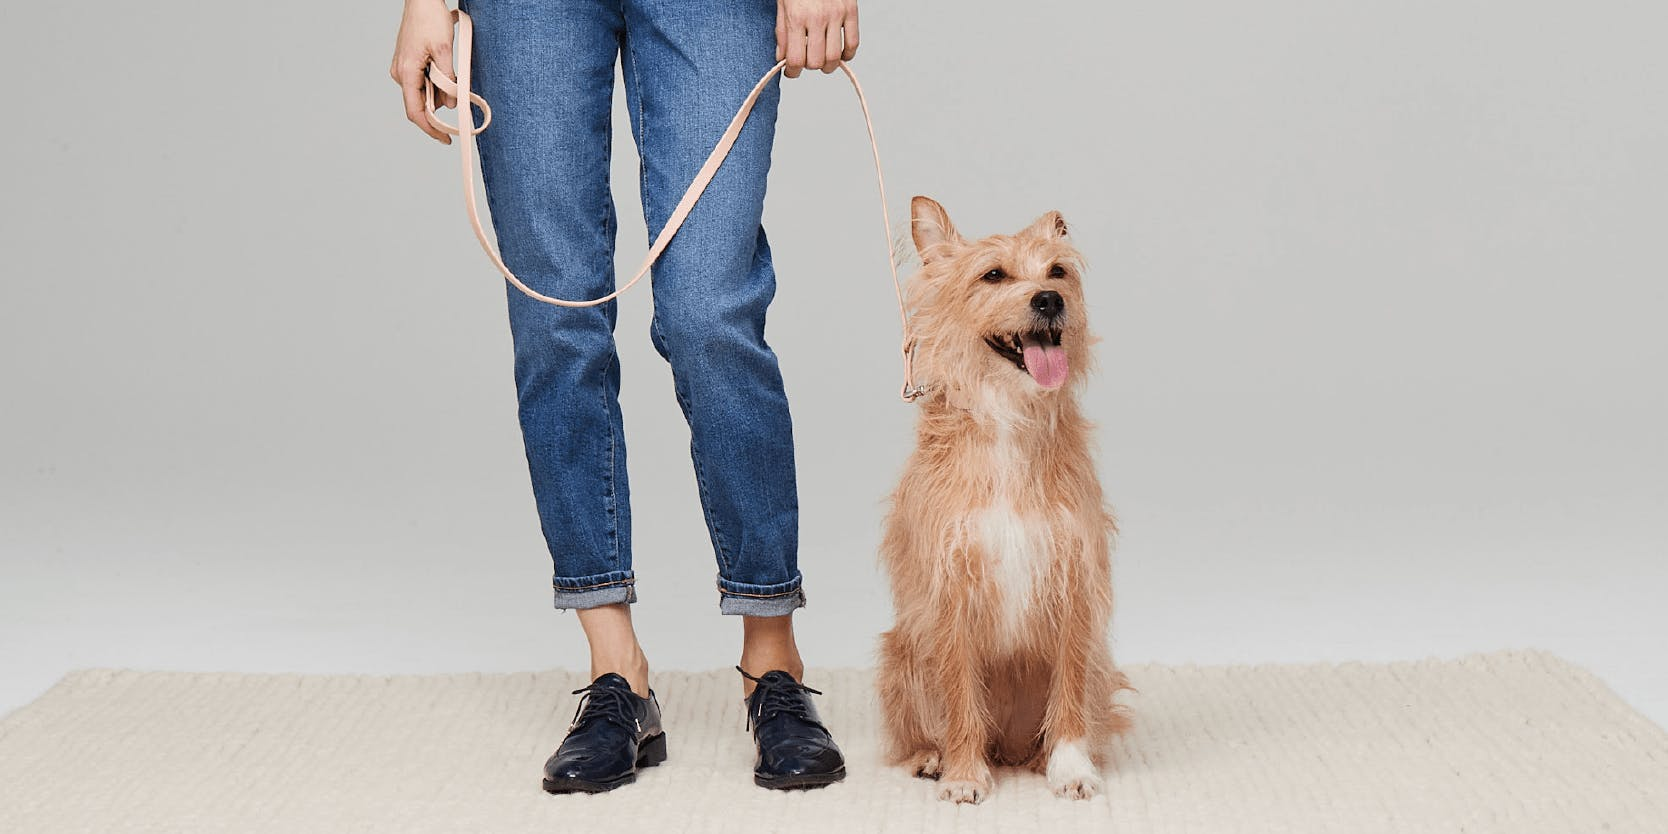 Dog and parent with leash